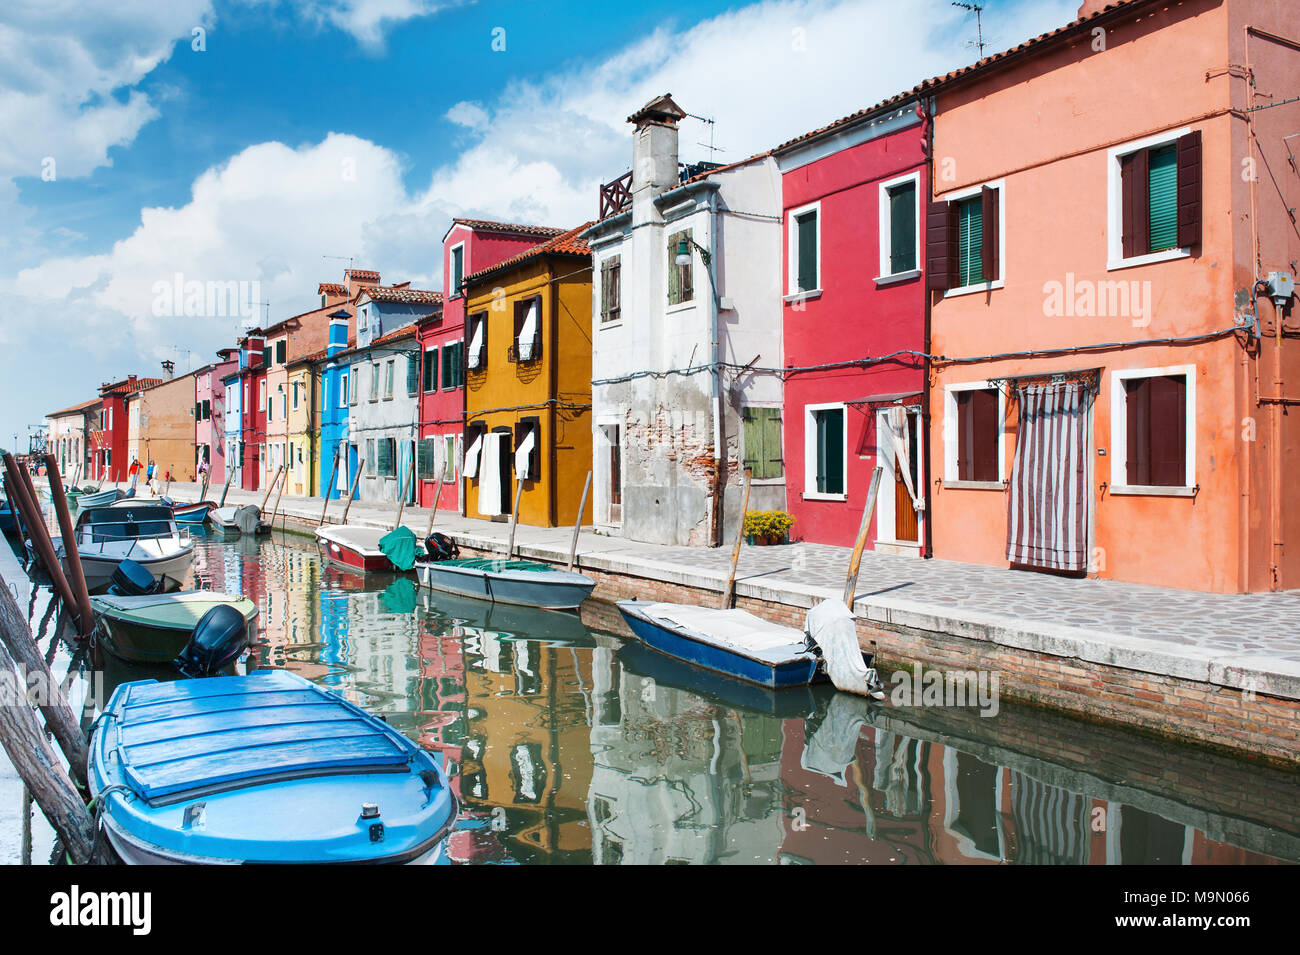 Burano island, Venice, Italy, Europe - canal and colorful houses beautiful day view - Stock Image